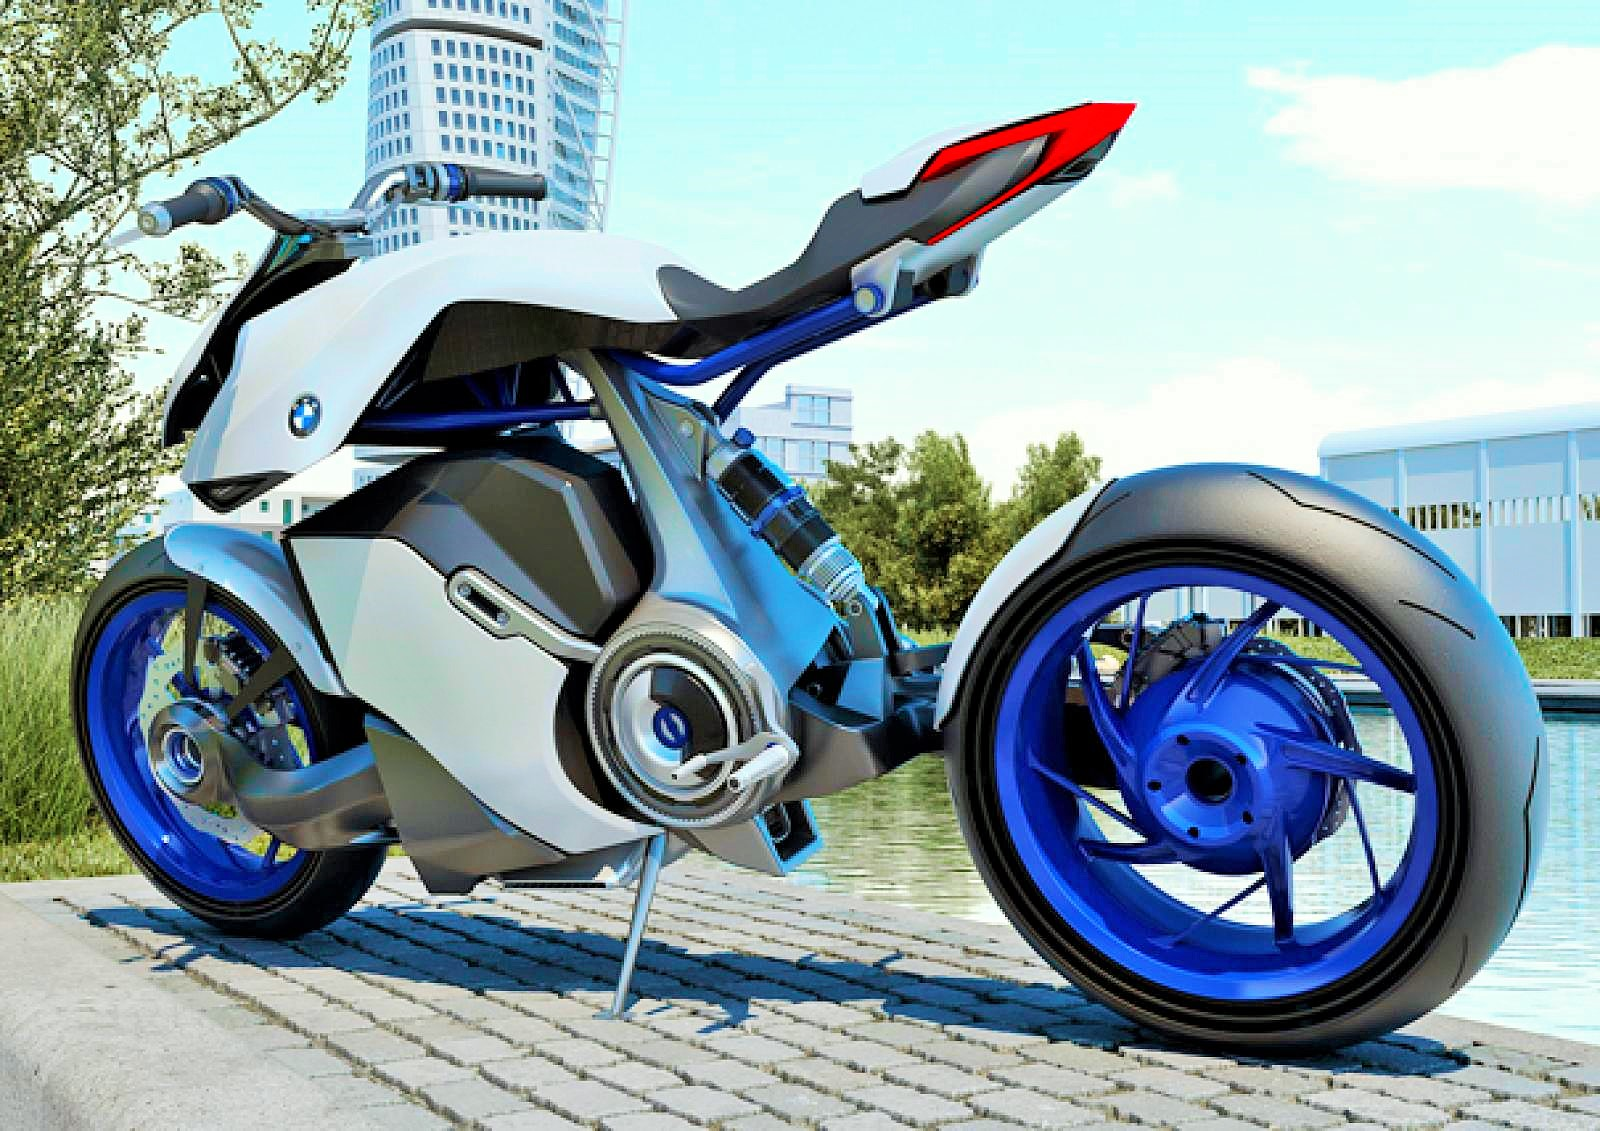 Stuntkedeewane hd bikes photos hd bikes wallpapers - Best wallpapers of cars and bikes ...